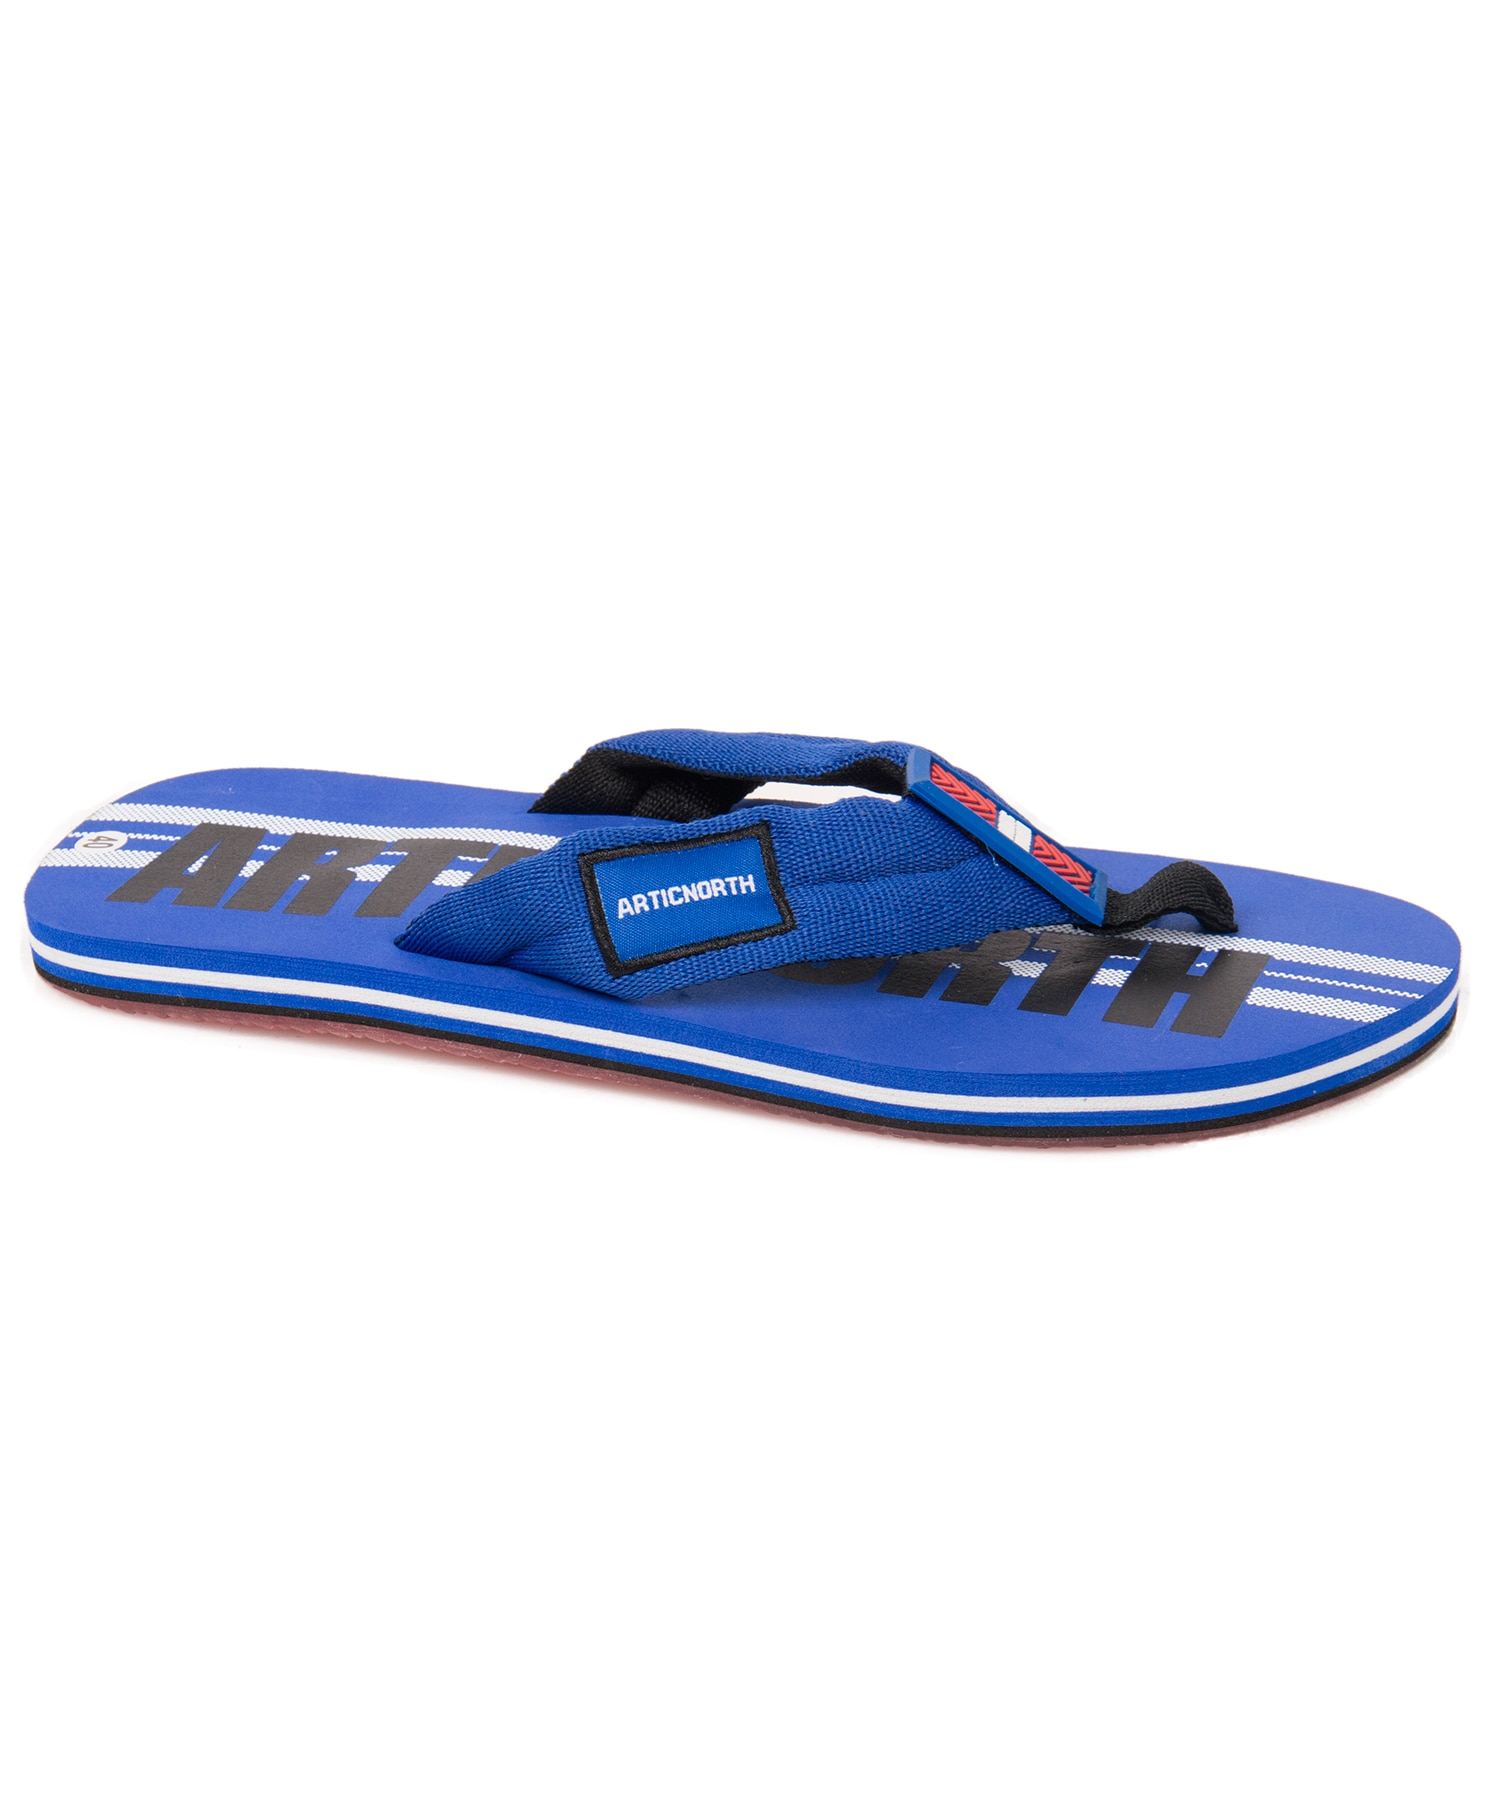 Artic North flip flop